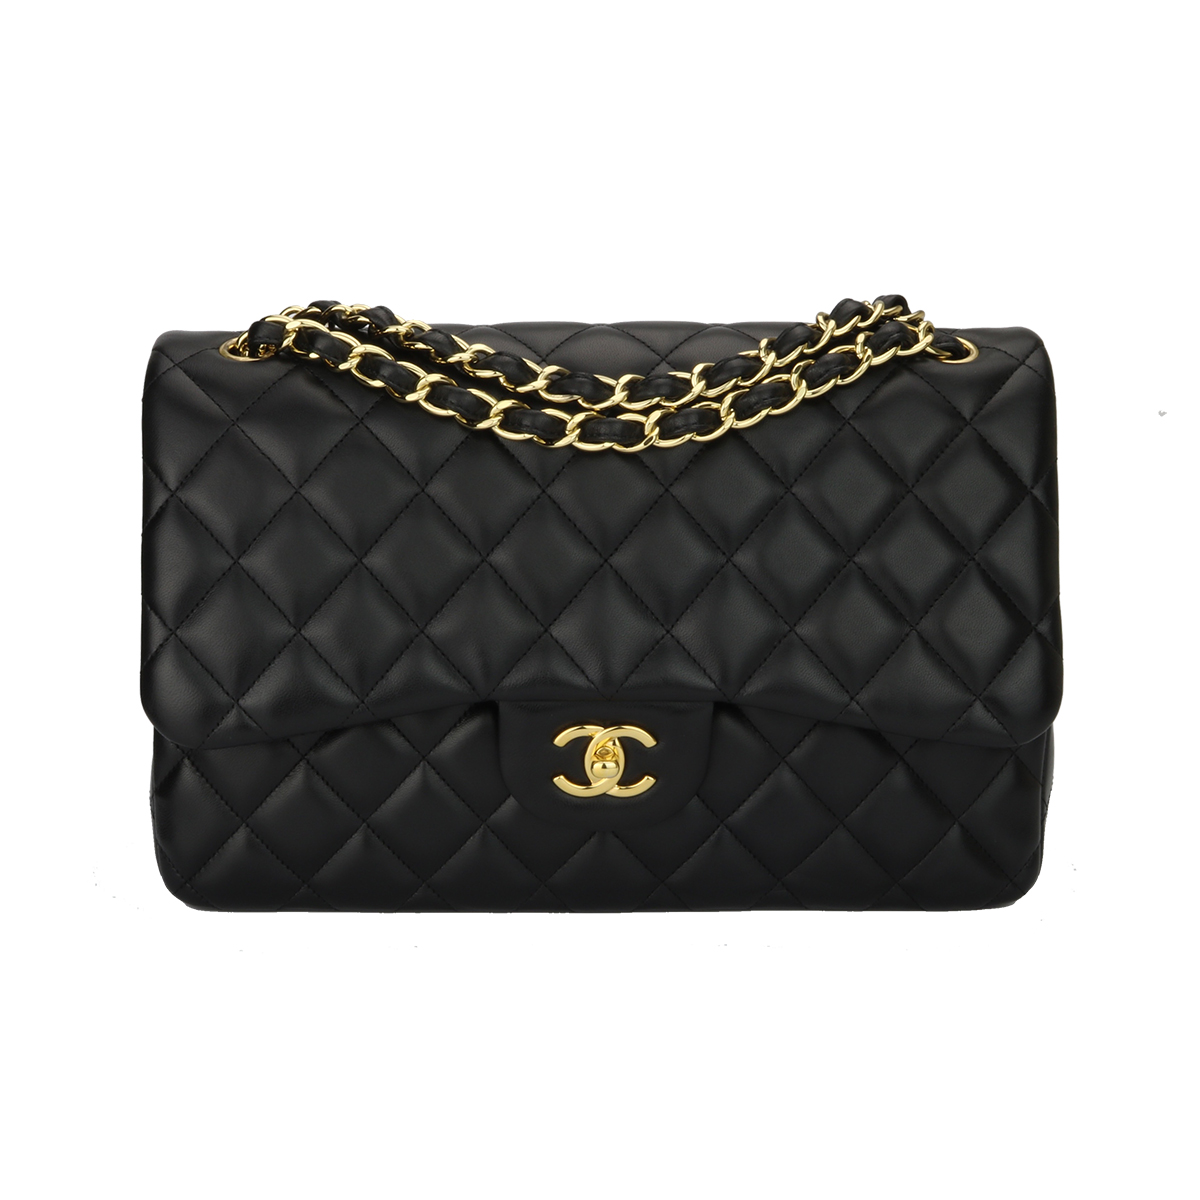 321852268f735d Chanel Classic Flap Bag Jumbo Gold | Stanford Center for Opportunity ...